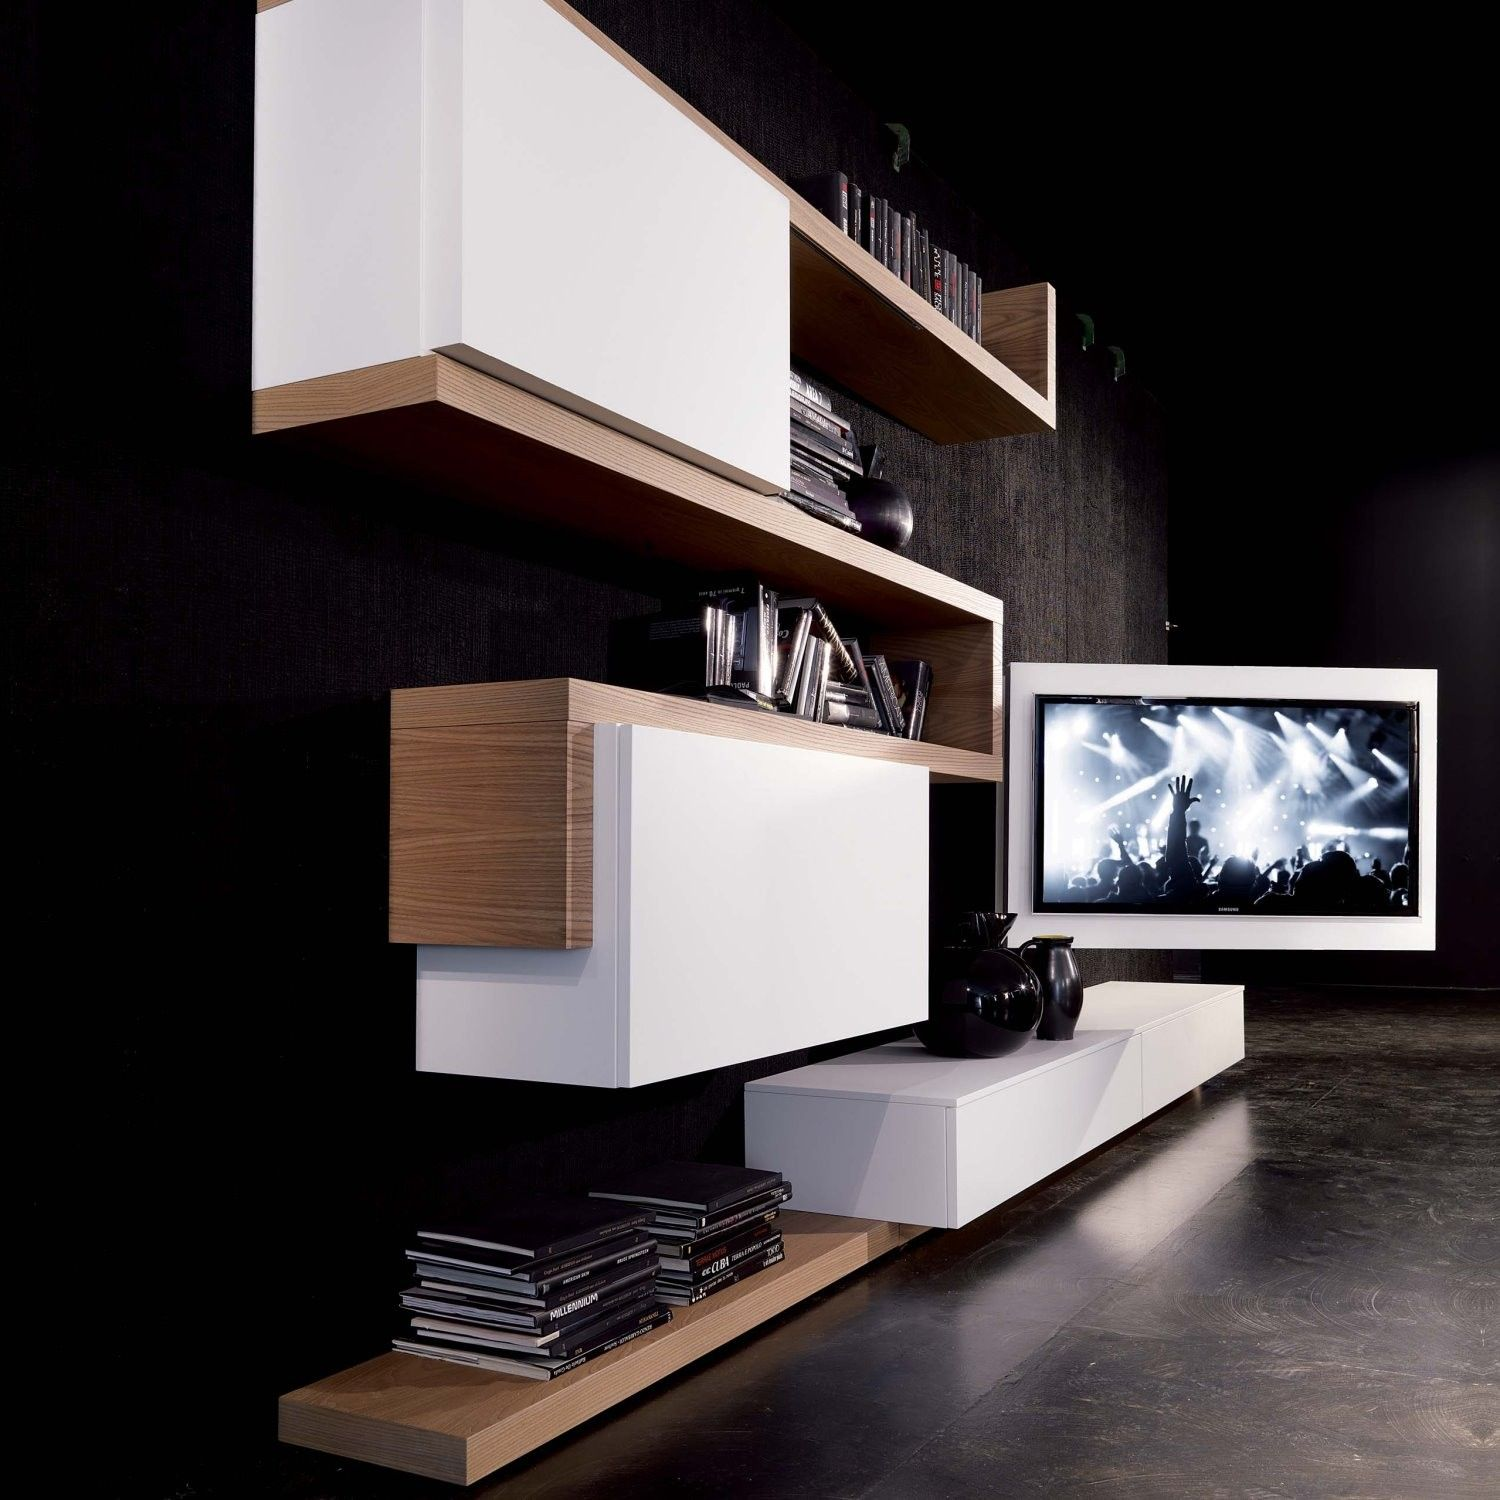 rack tv m bel h ngend schwenkbar und zu ffnen arredaclick wohnzimmer in 2019 pinterest. Black Bedroom Furniture Sets. Home Design Ideas